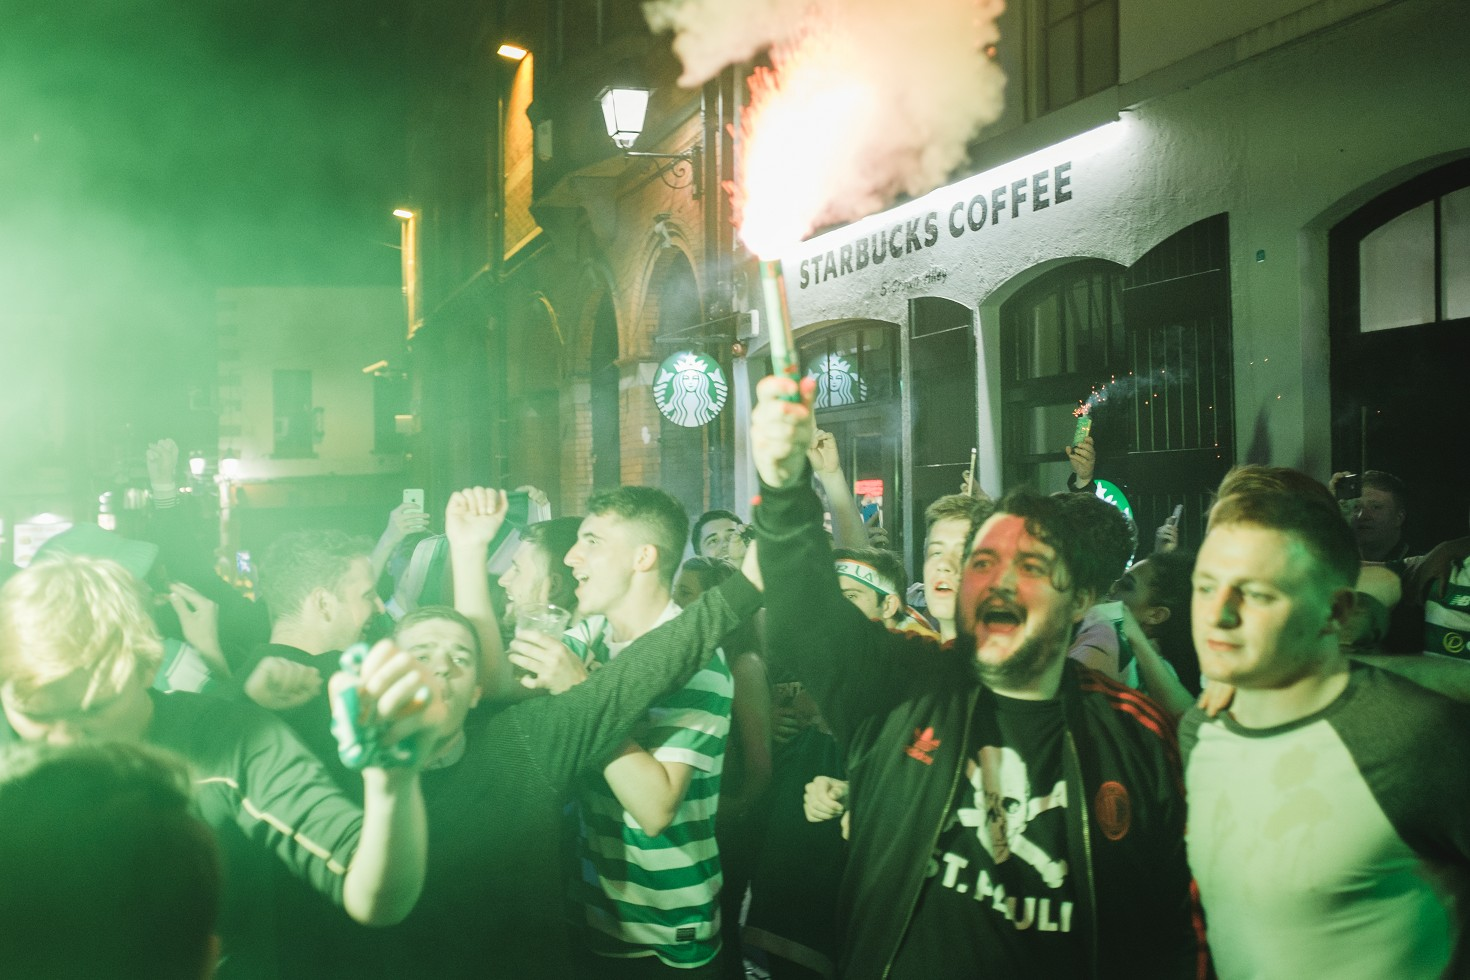 Celtic-Barca-Barcelona-Dublin-Temple-Bar-Aviva-Ireland-Fans (47 von 68)